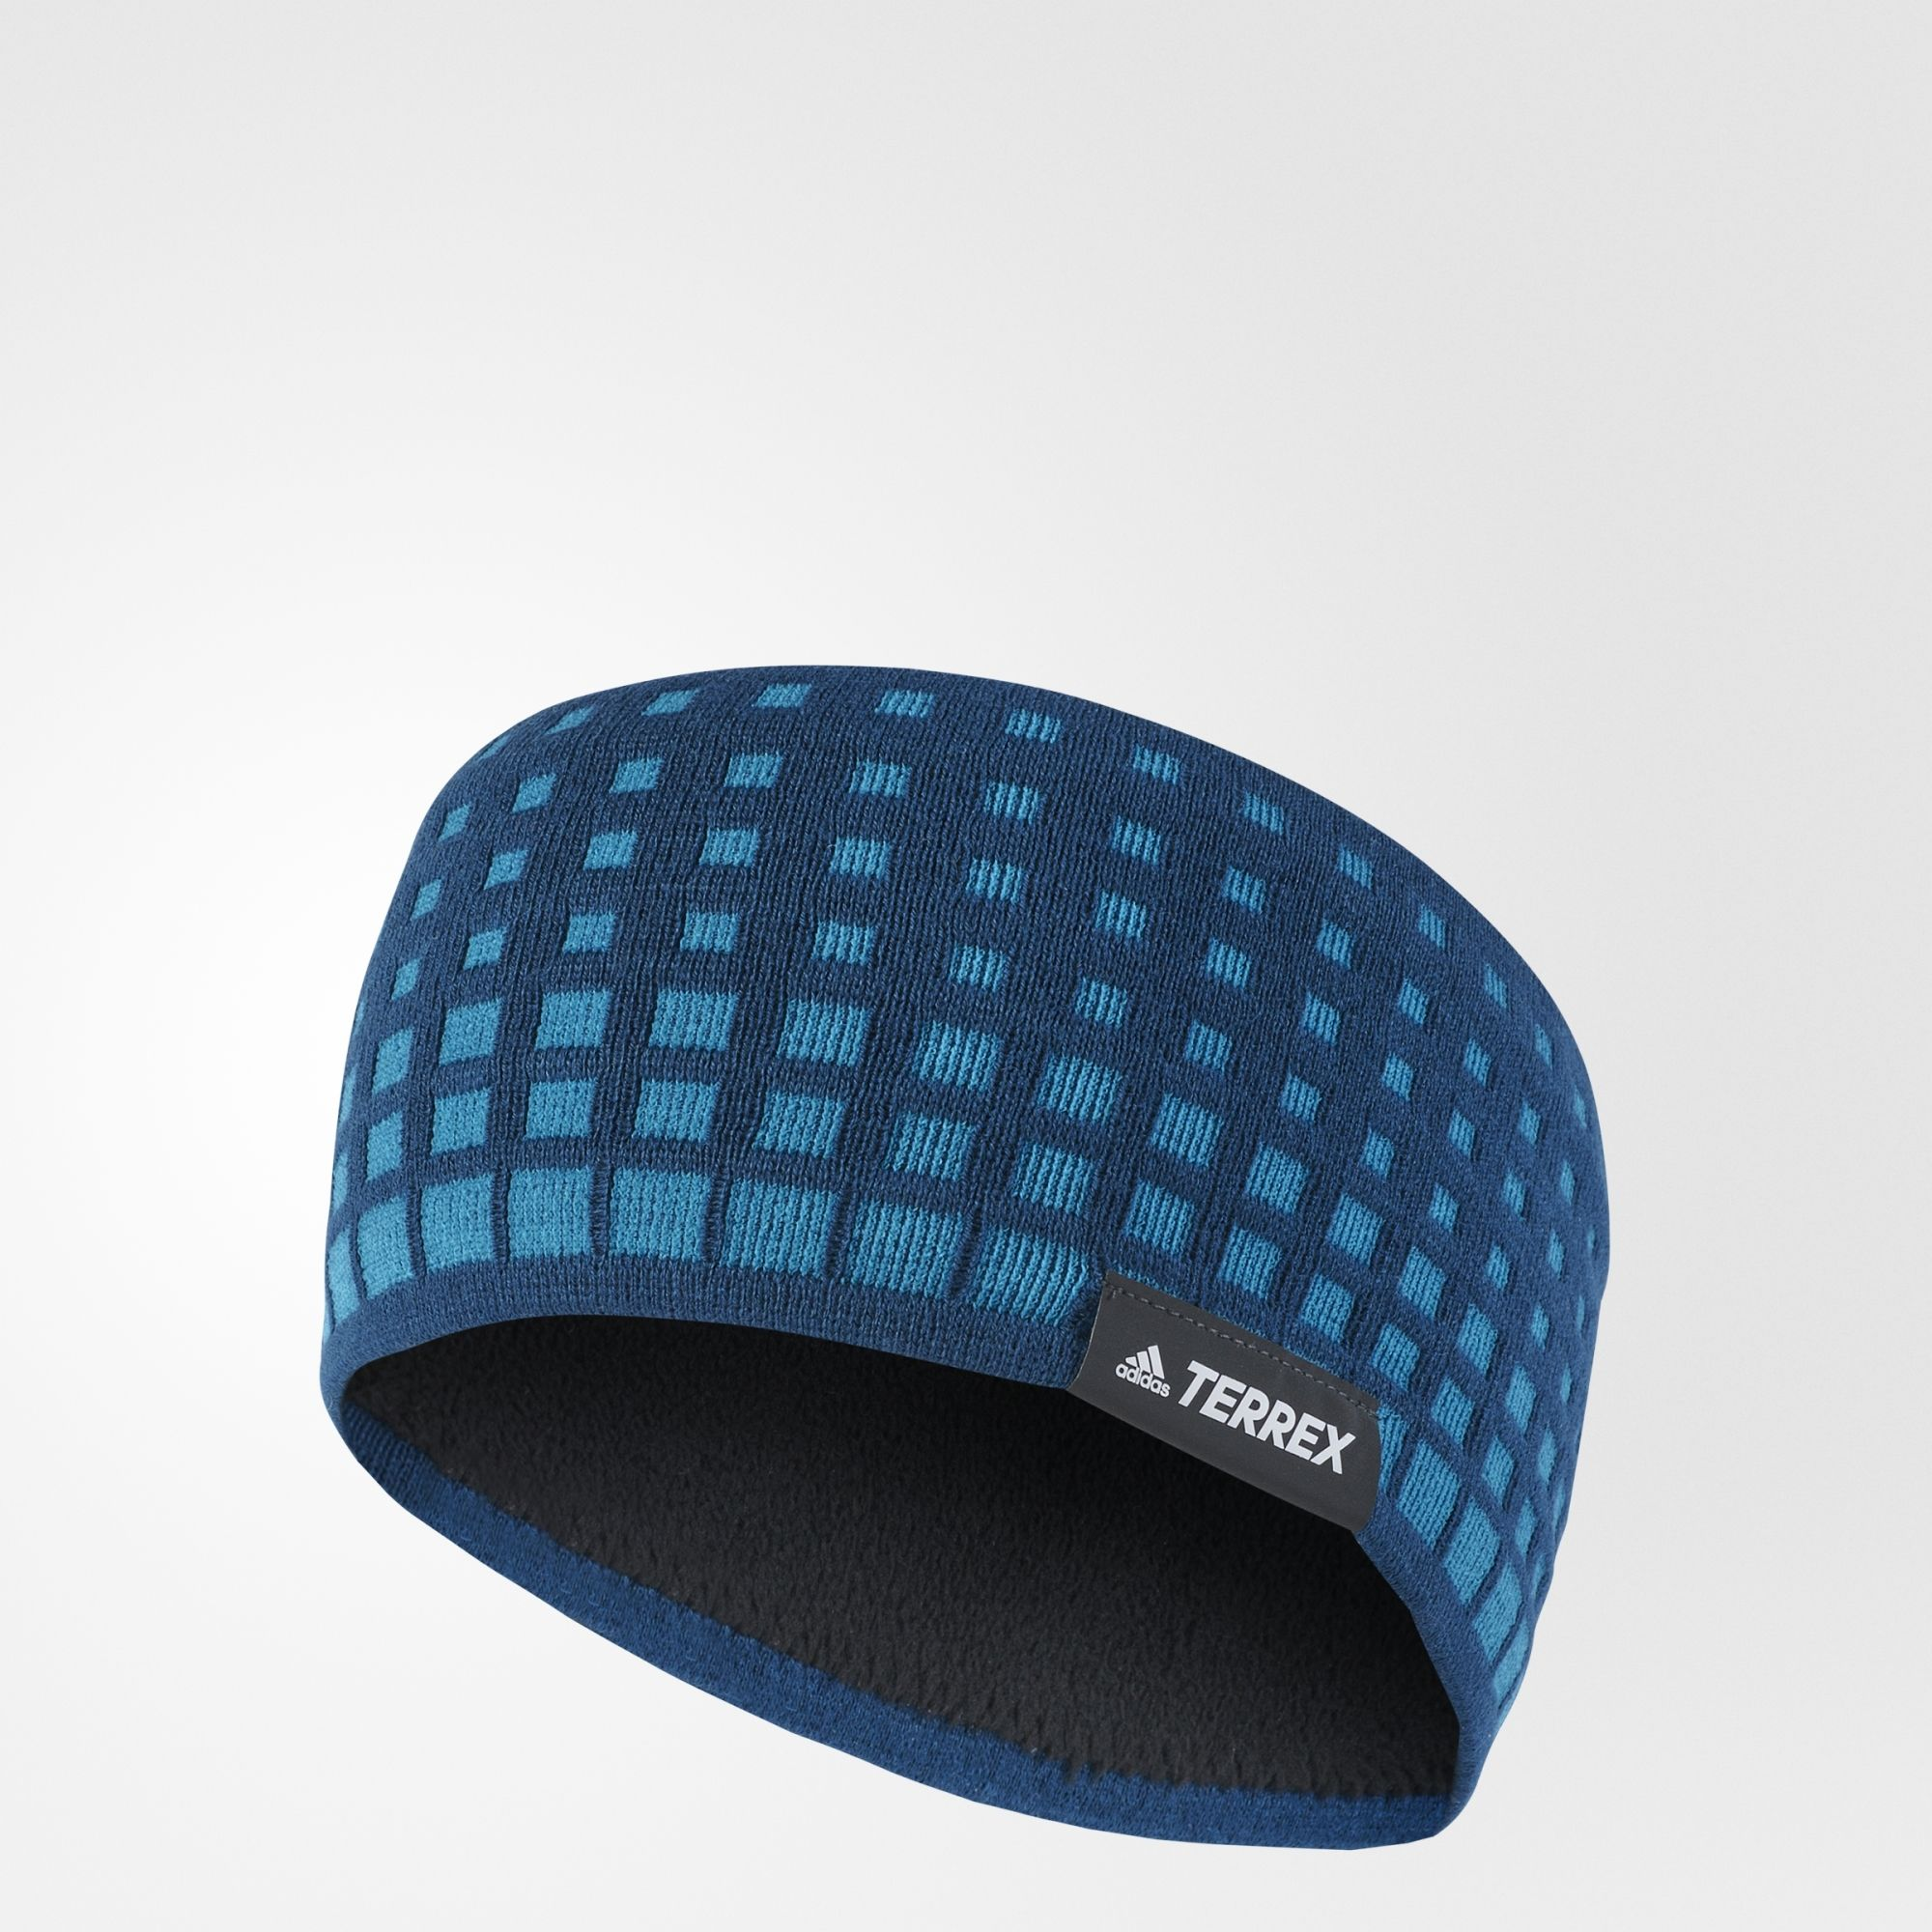 adidas Olympic Headband in Blau